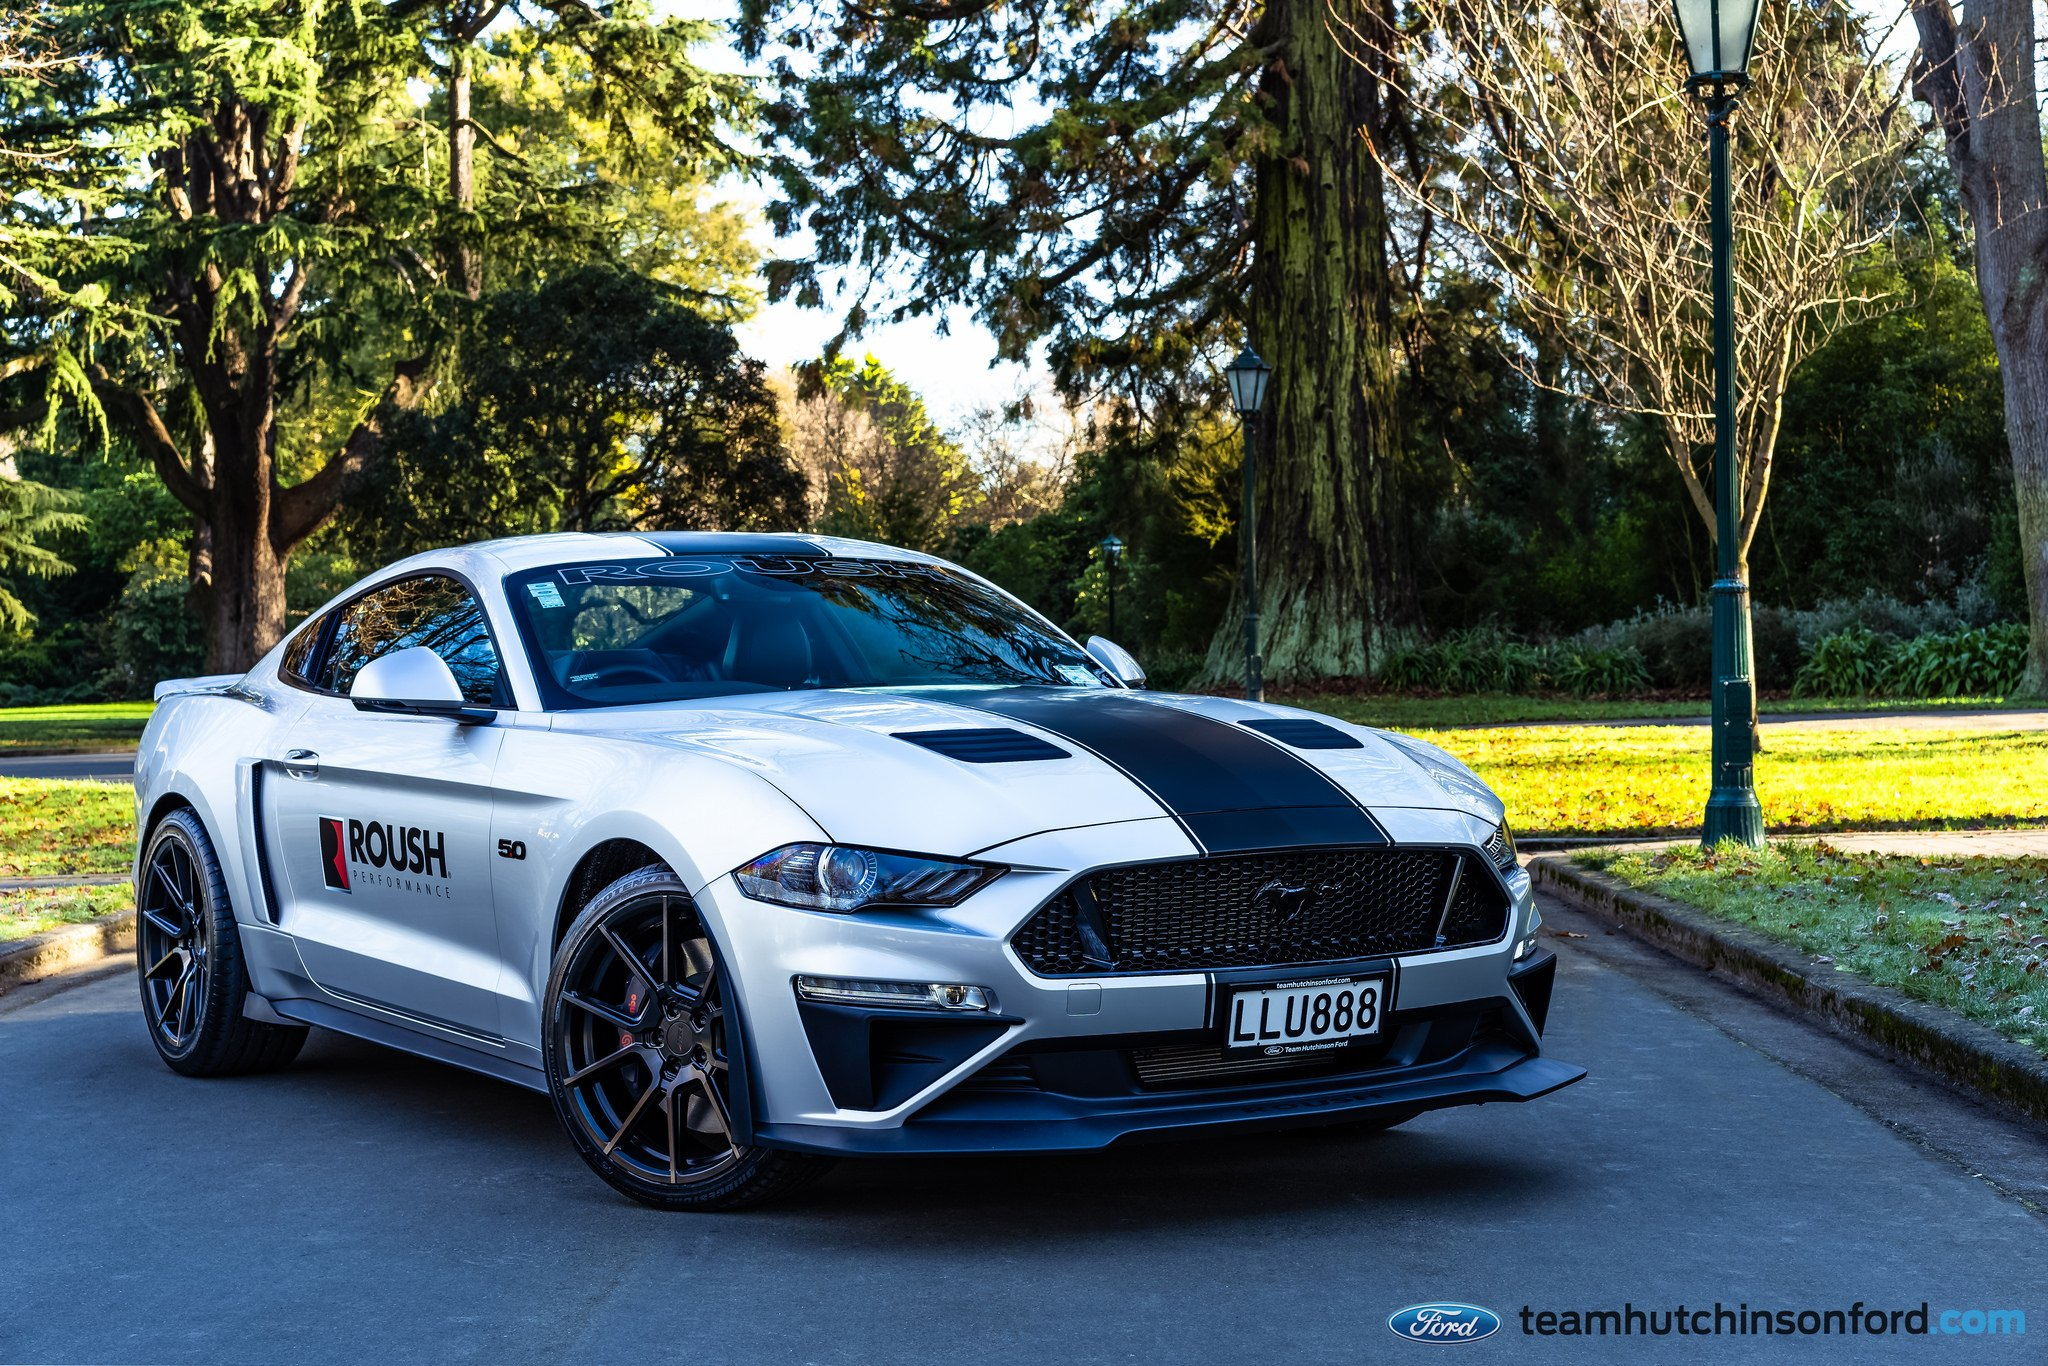 Roush performance body kit on white ford mustang 5 0 photo by tsw wheels